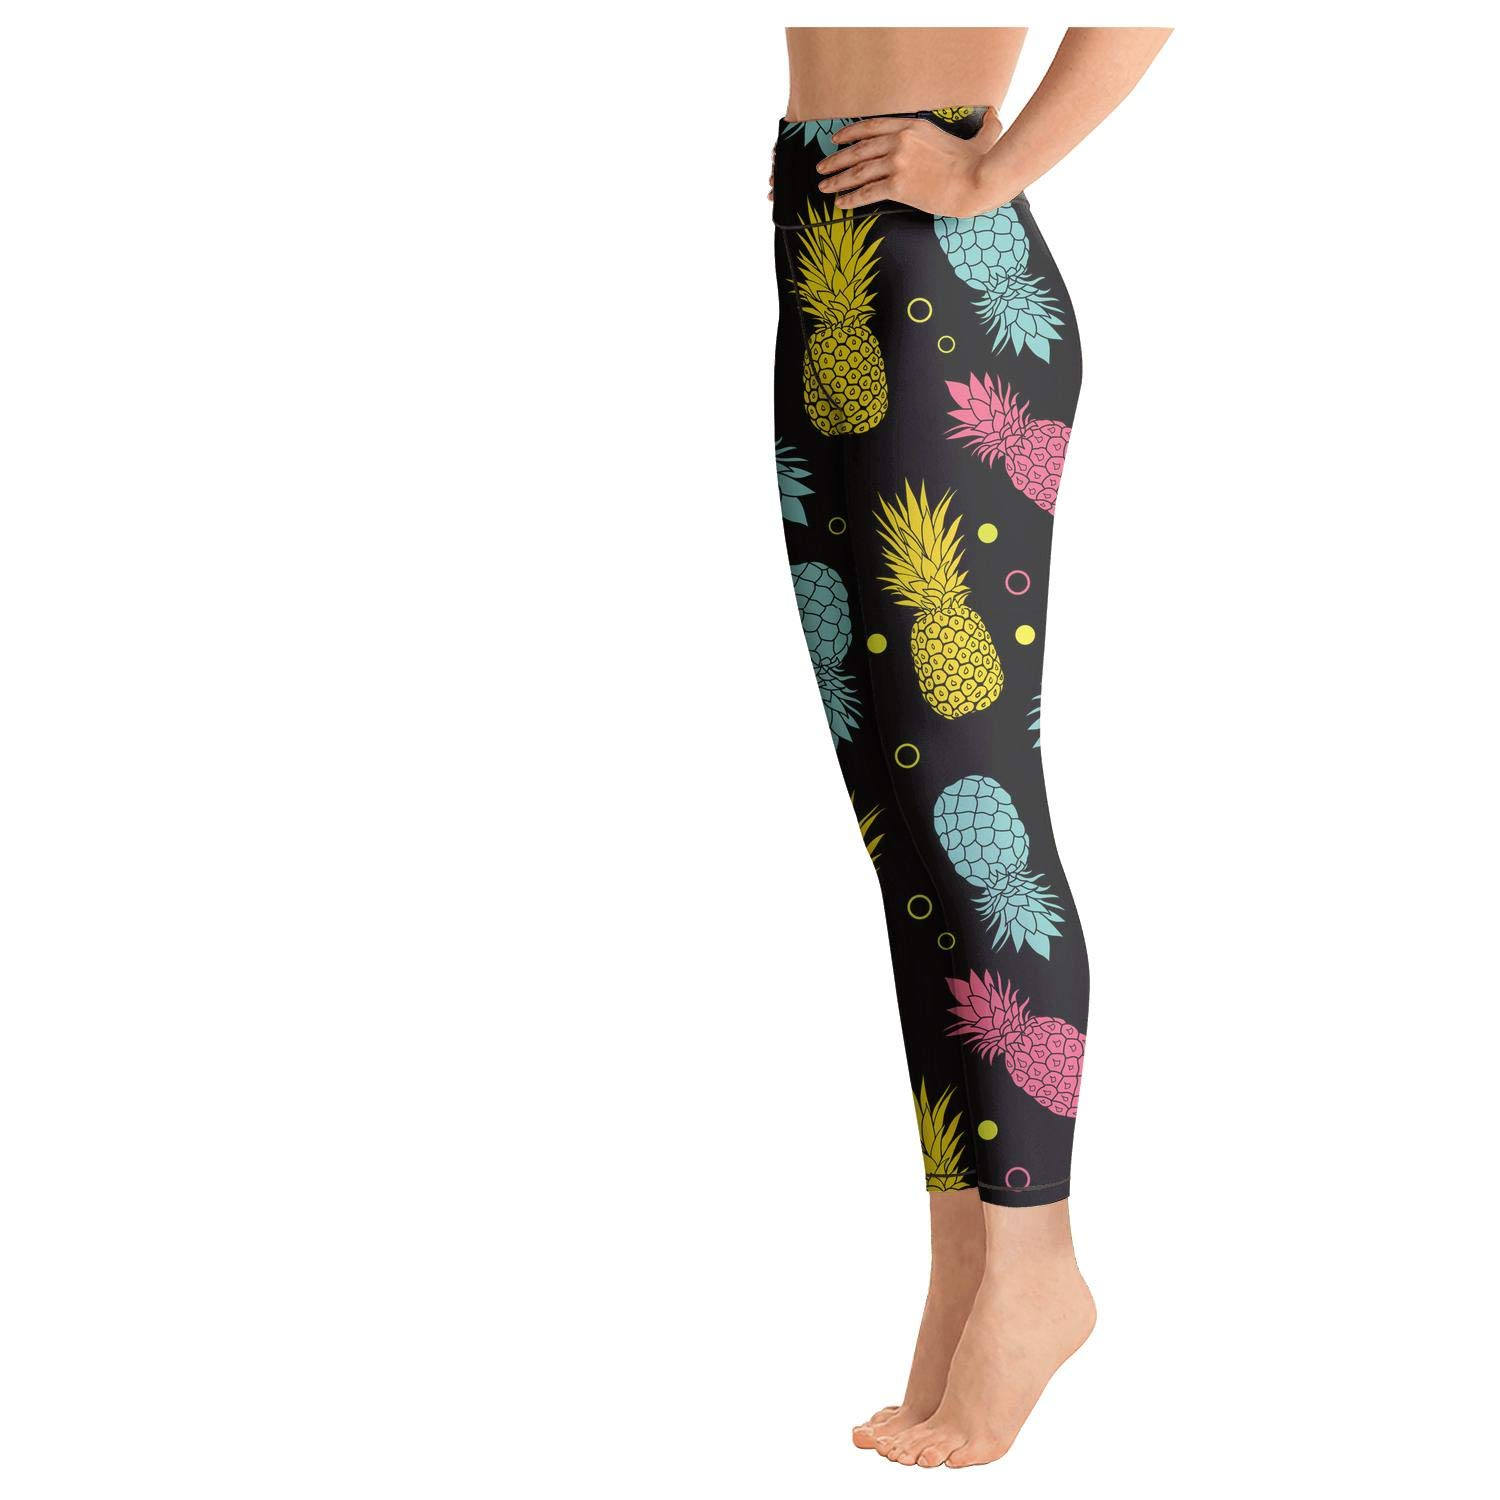 PROGIFToO Womens Workout Running Legging Black Summer Colorful Tropical Fruit Pineapple Tummy Control Yoga Pants Gym